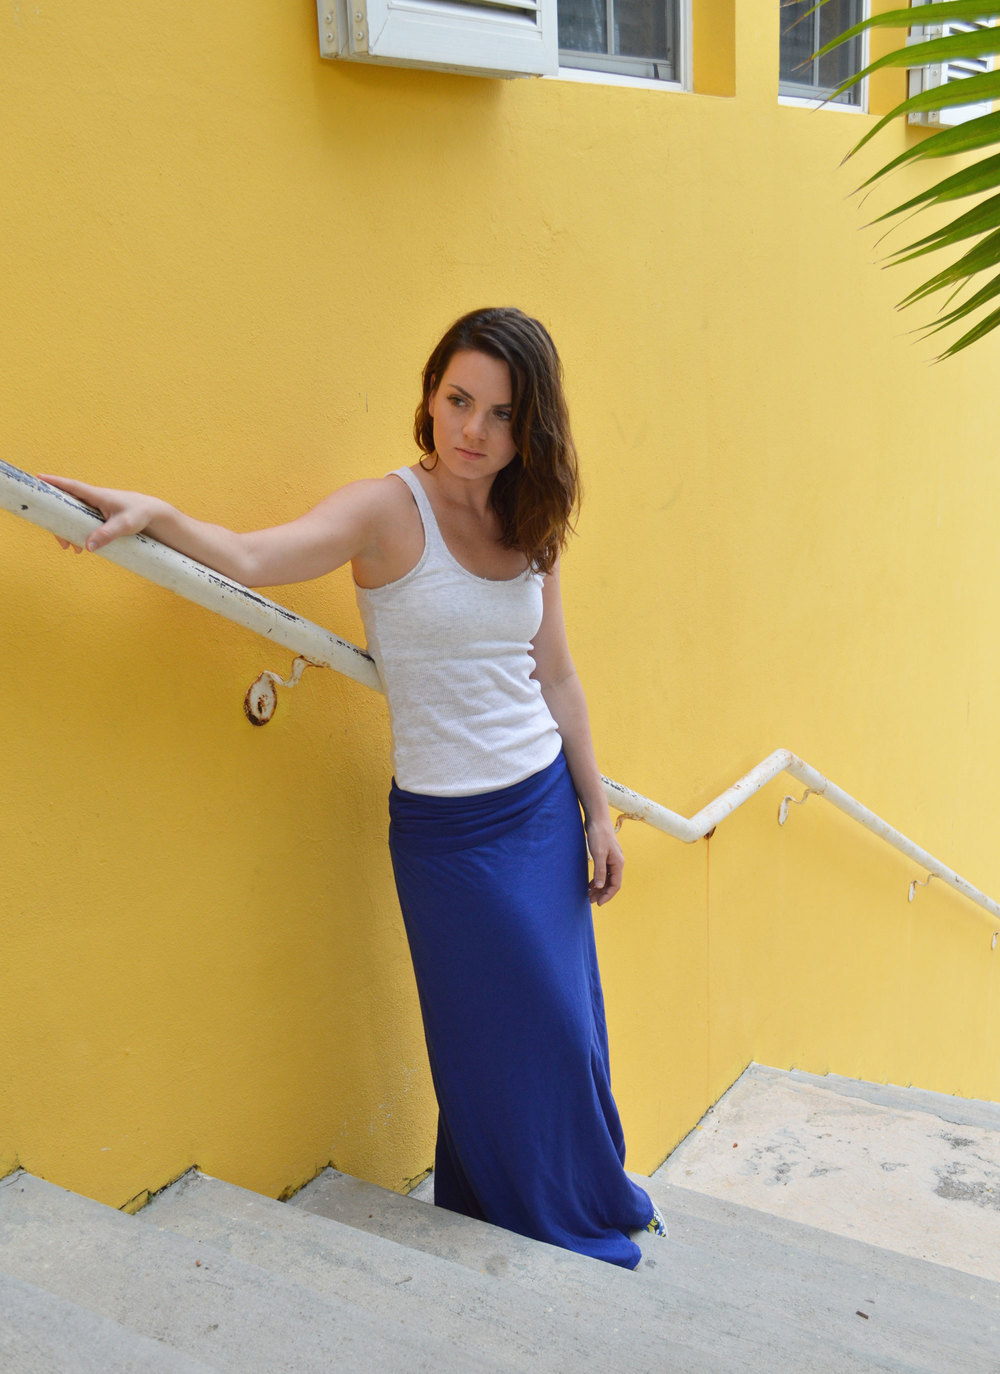 grey-tank-blue-anthropologie-skirt-target-peter-pilotto-slip-on-sneakers-style-blogger-nassau-bahamas.jpeg